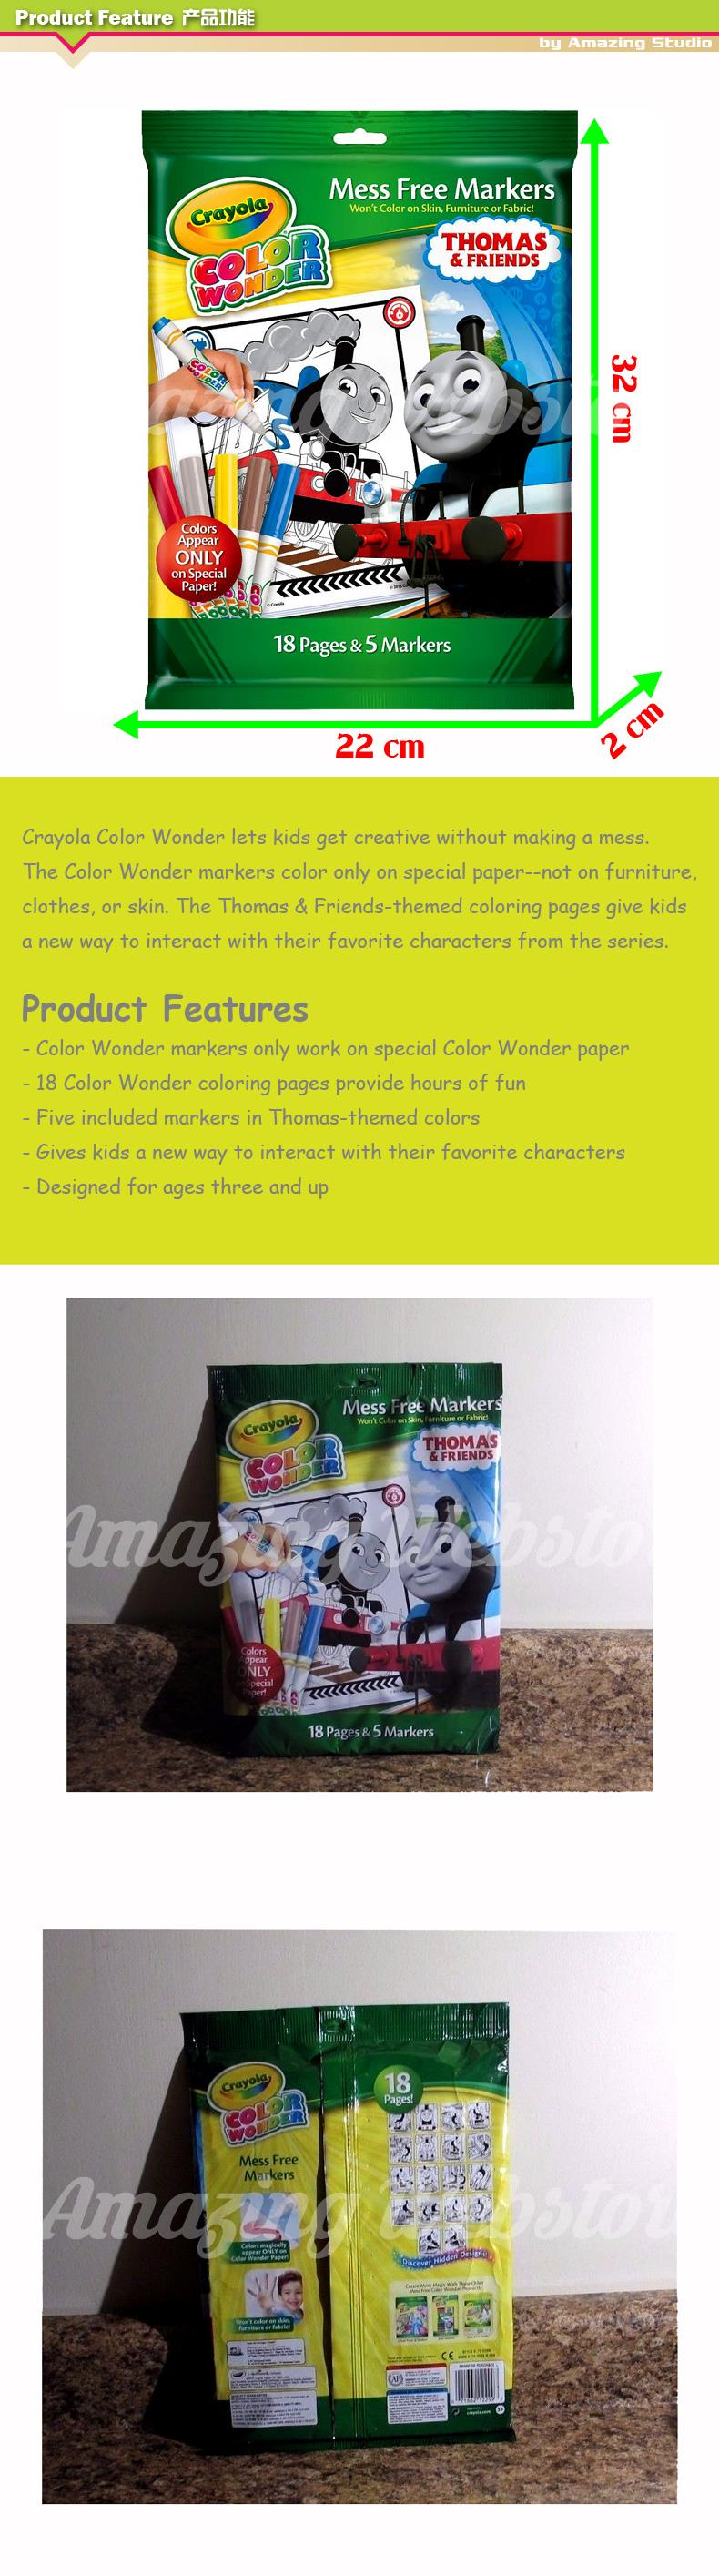 Crayola Color Wonder Mess Free Series - Thomas & Friends